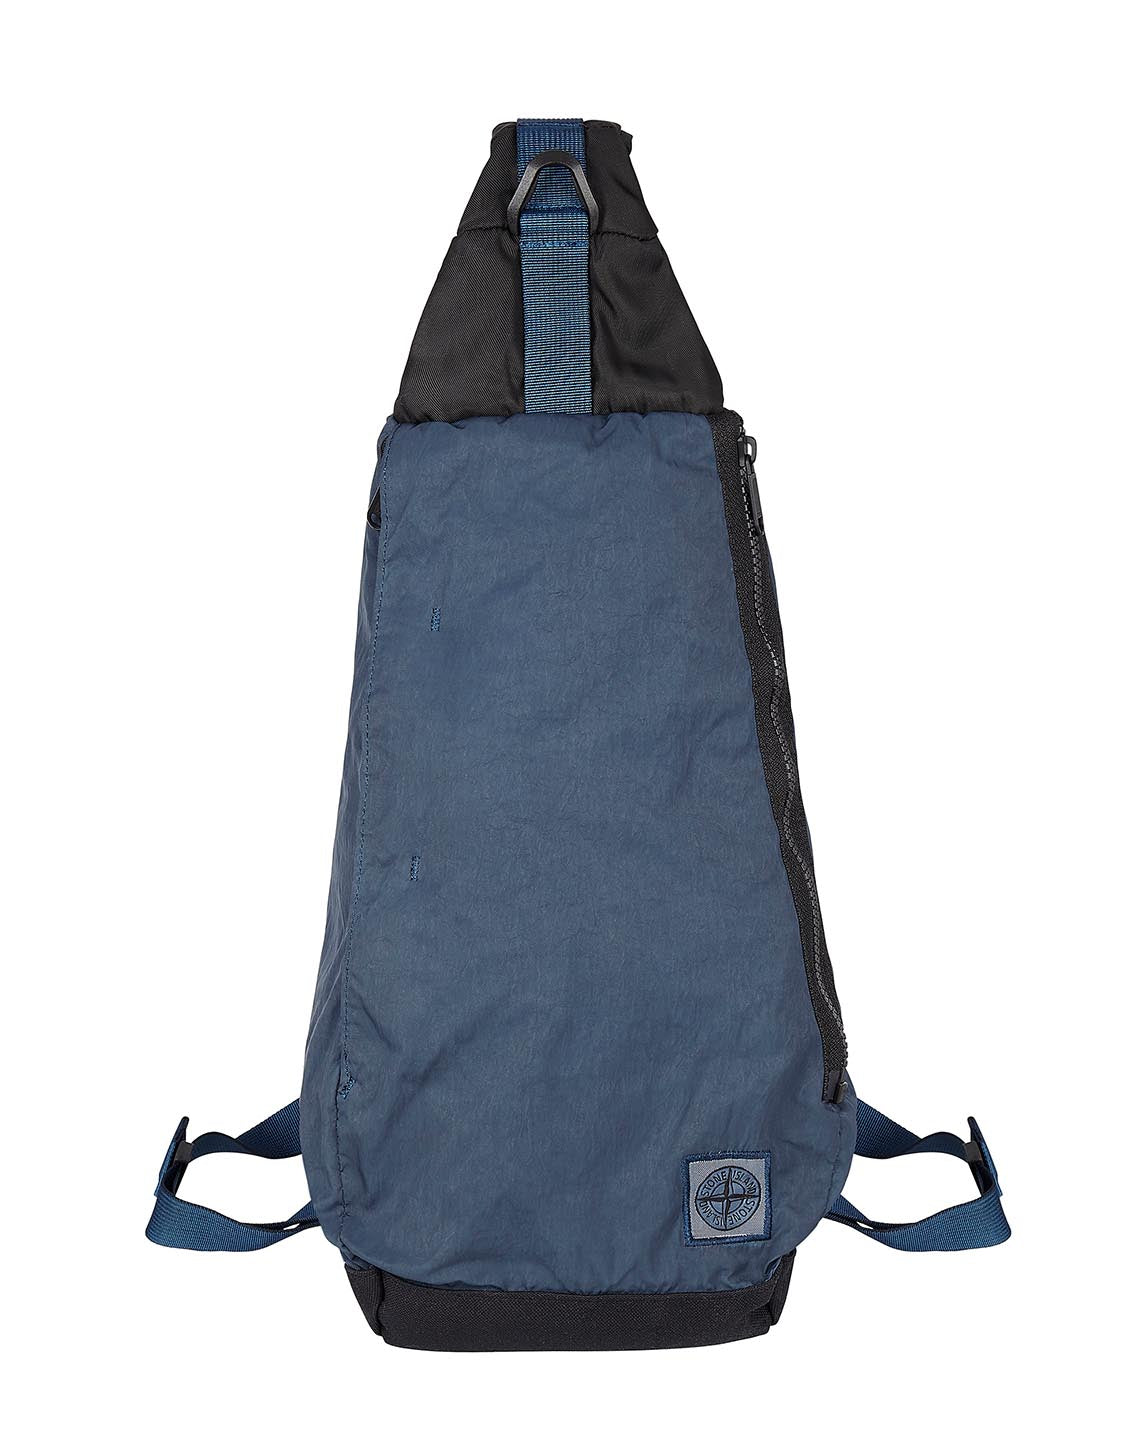 91470 Shoulder Backpack in Dark Blue